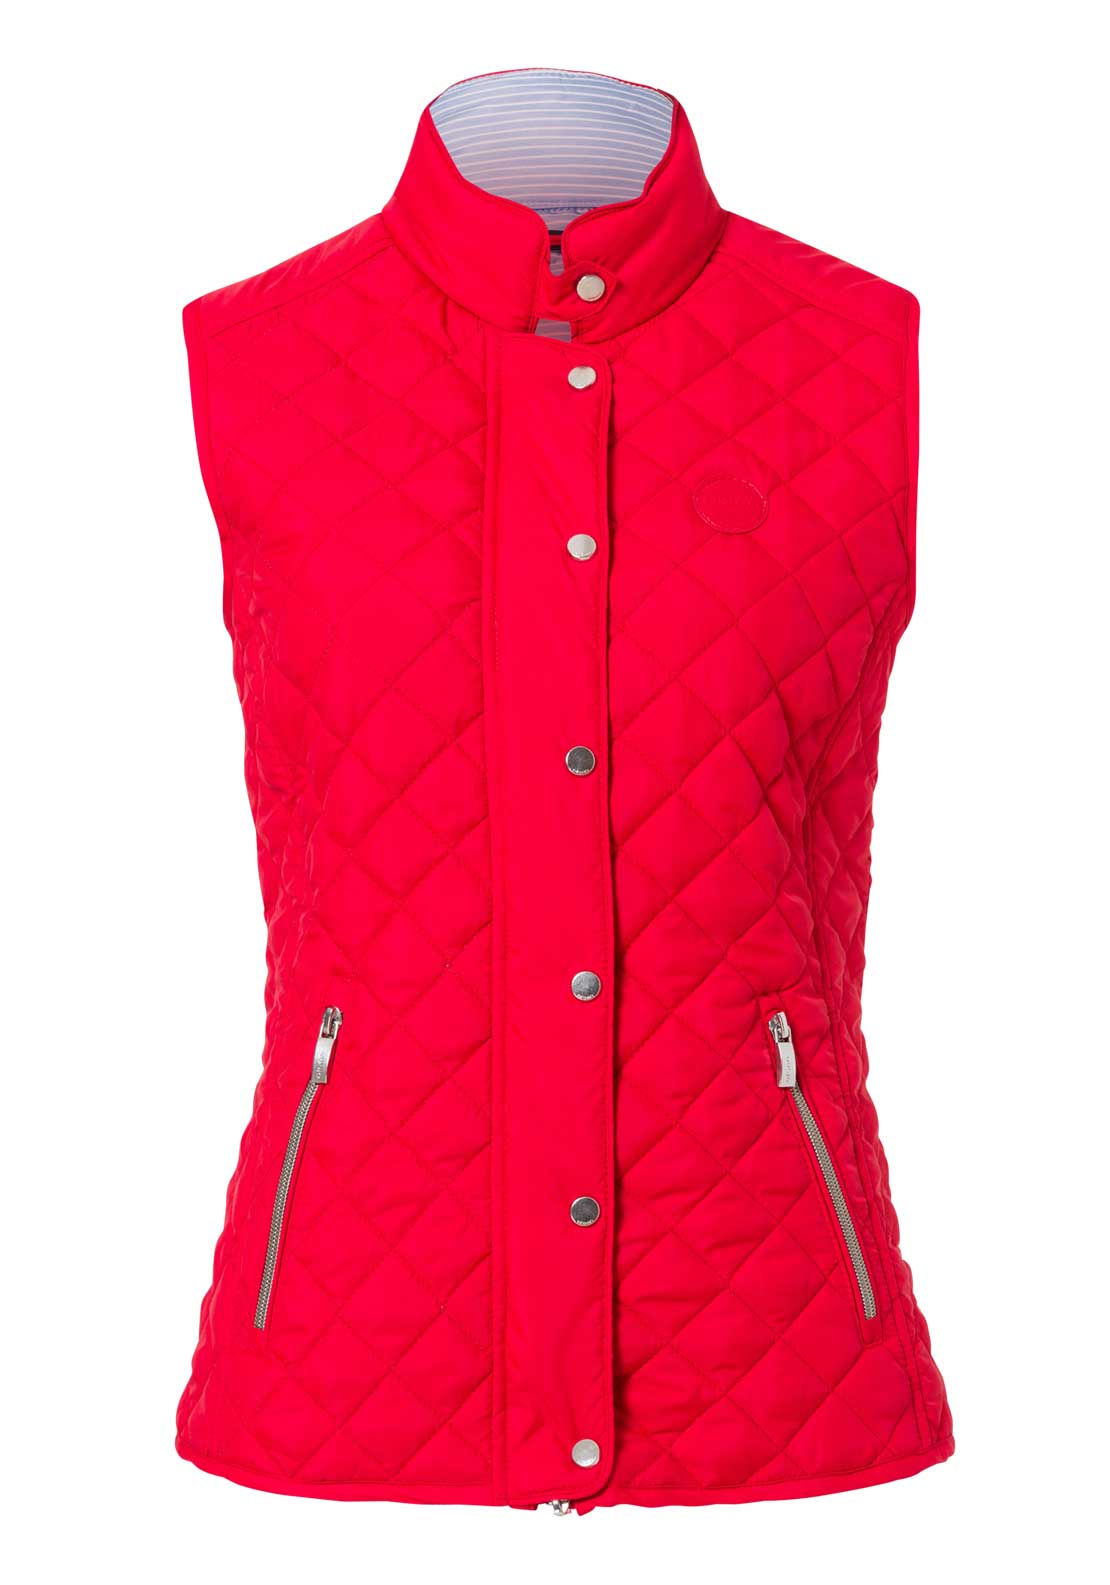 Olsen Quilted Gilet Waistcoat, Red